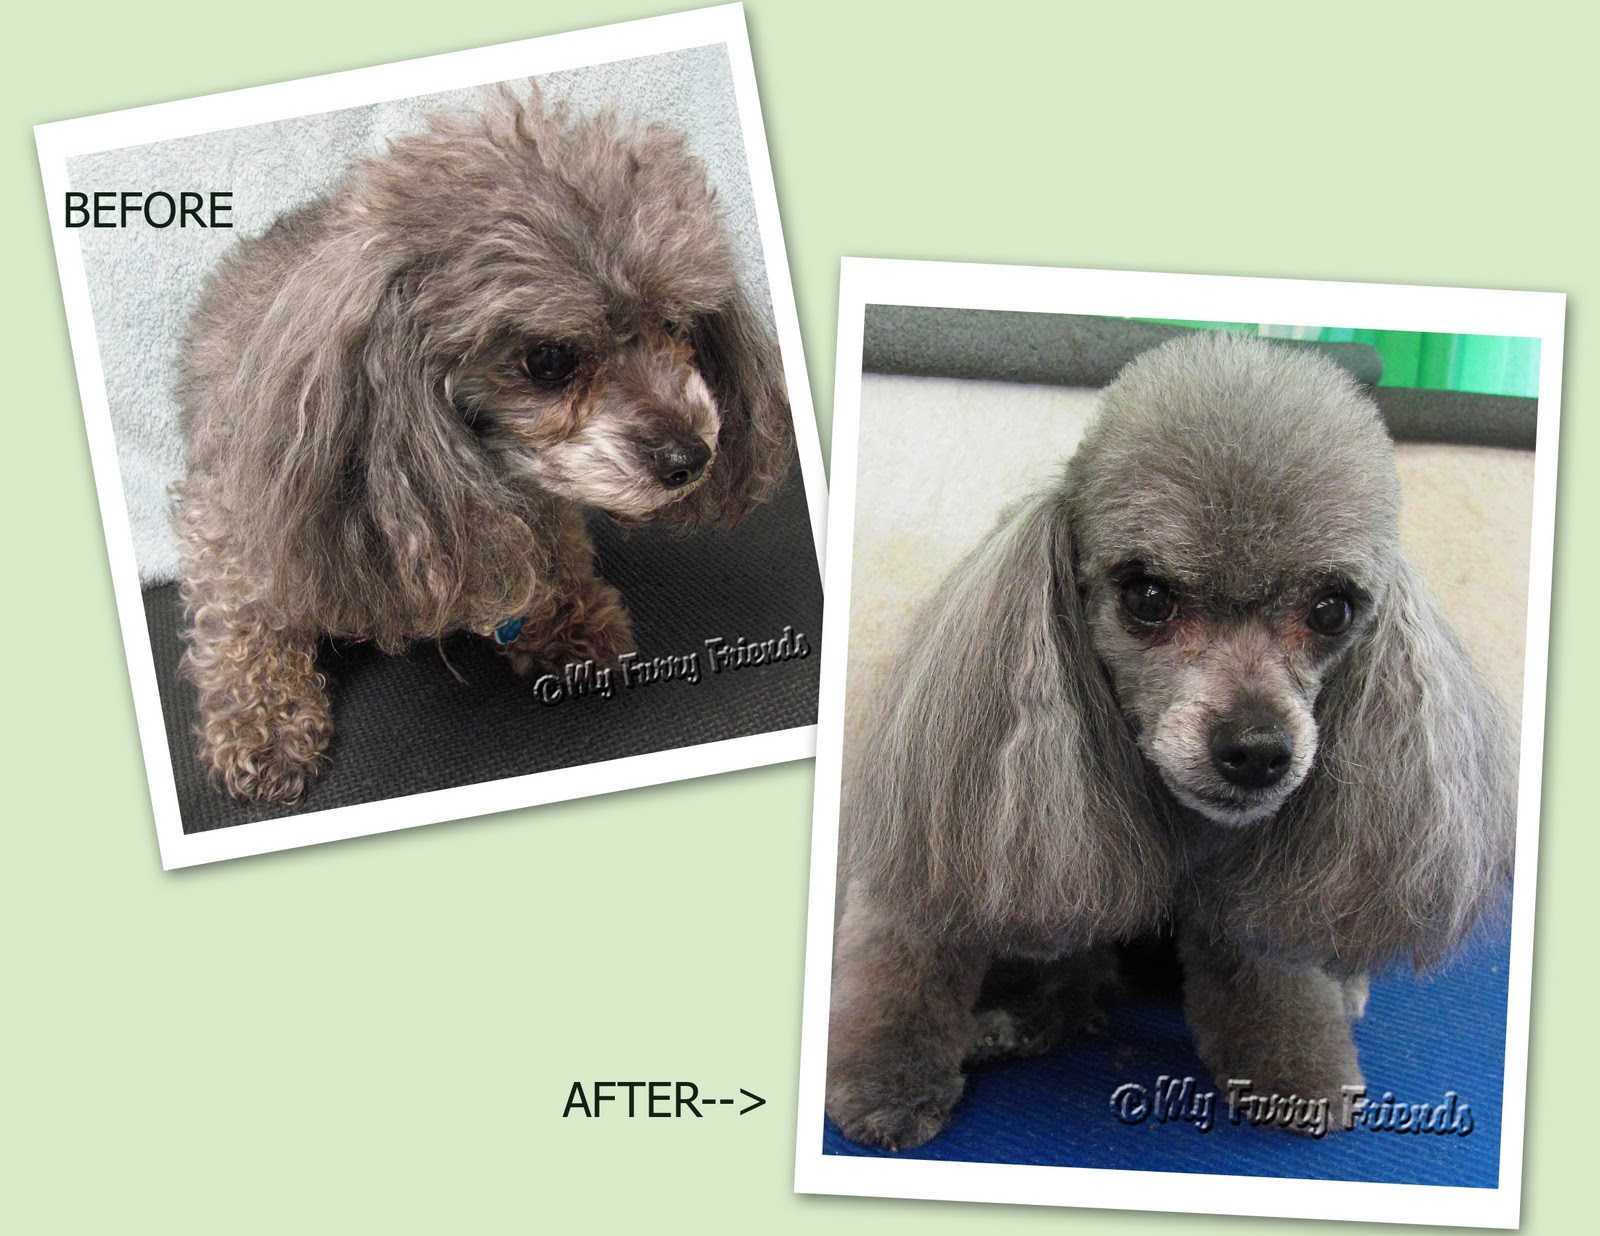 grooming your furry friend: does a poodle have to be groomed